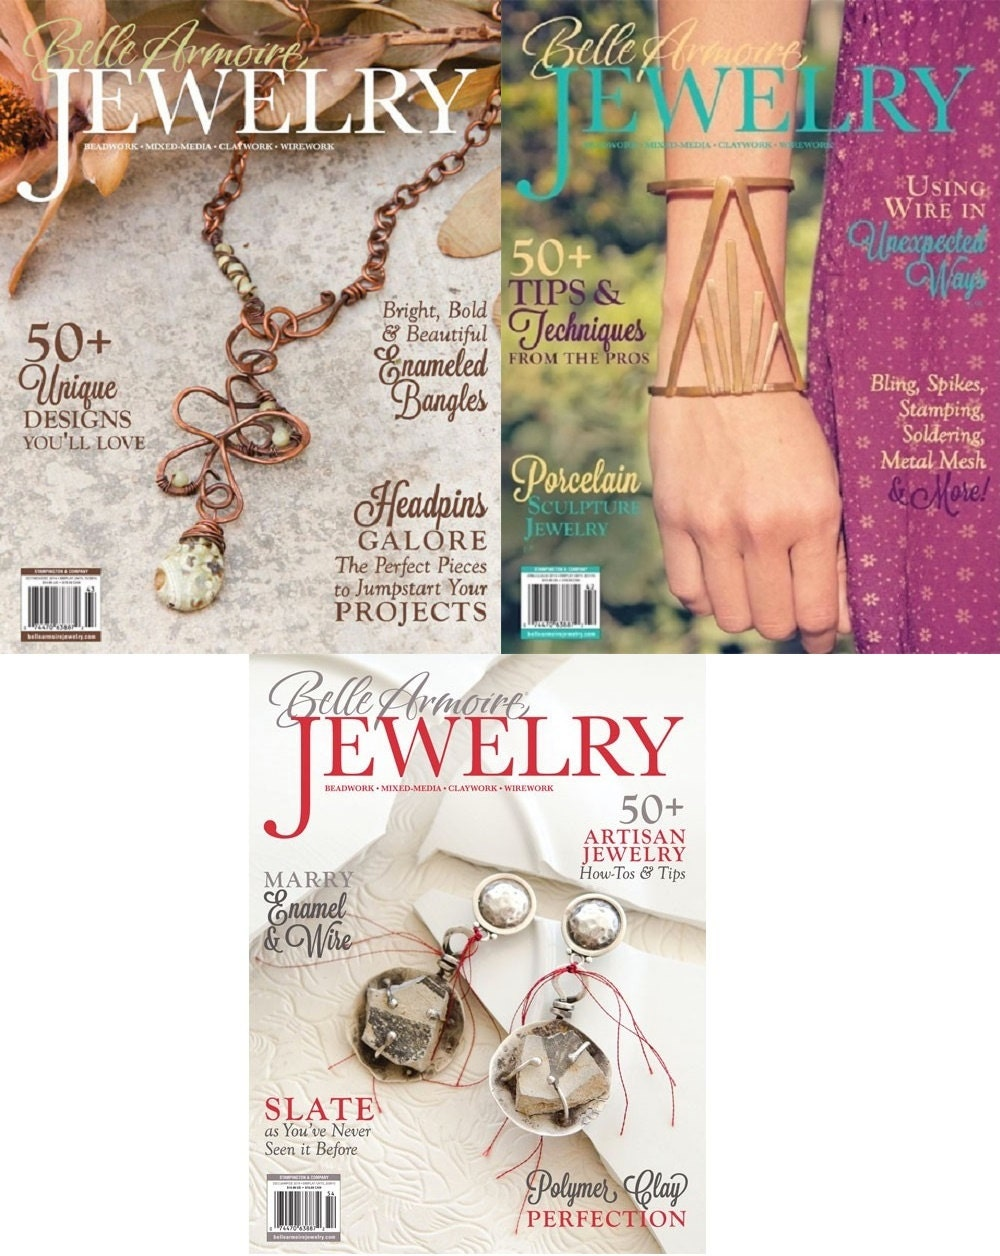 Belle armoire jewelry magazine volume 10 issues fnt for Belle armoire jewelry magazine subscription